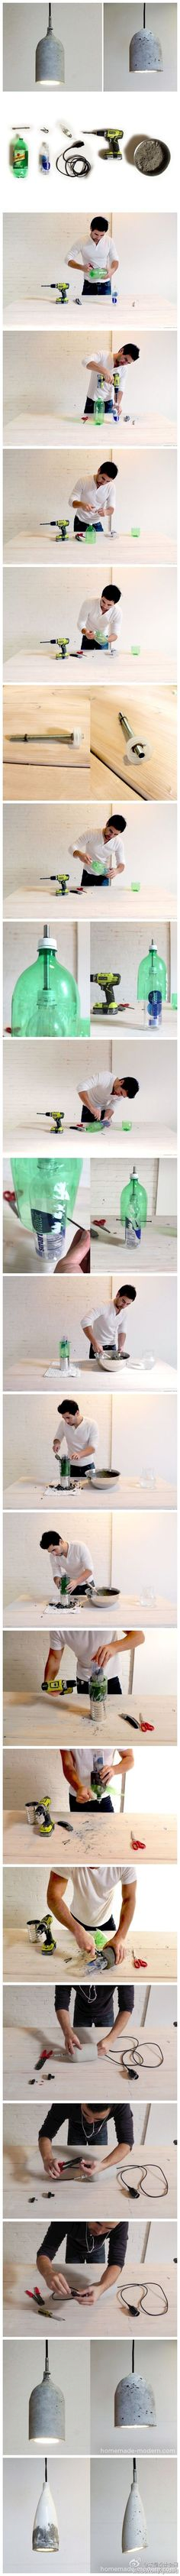 Concrete light tutorial using plastic bottle